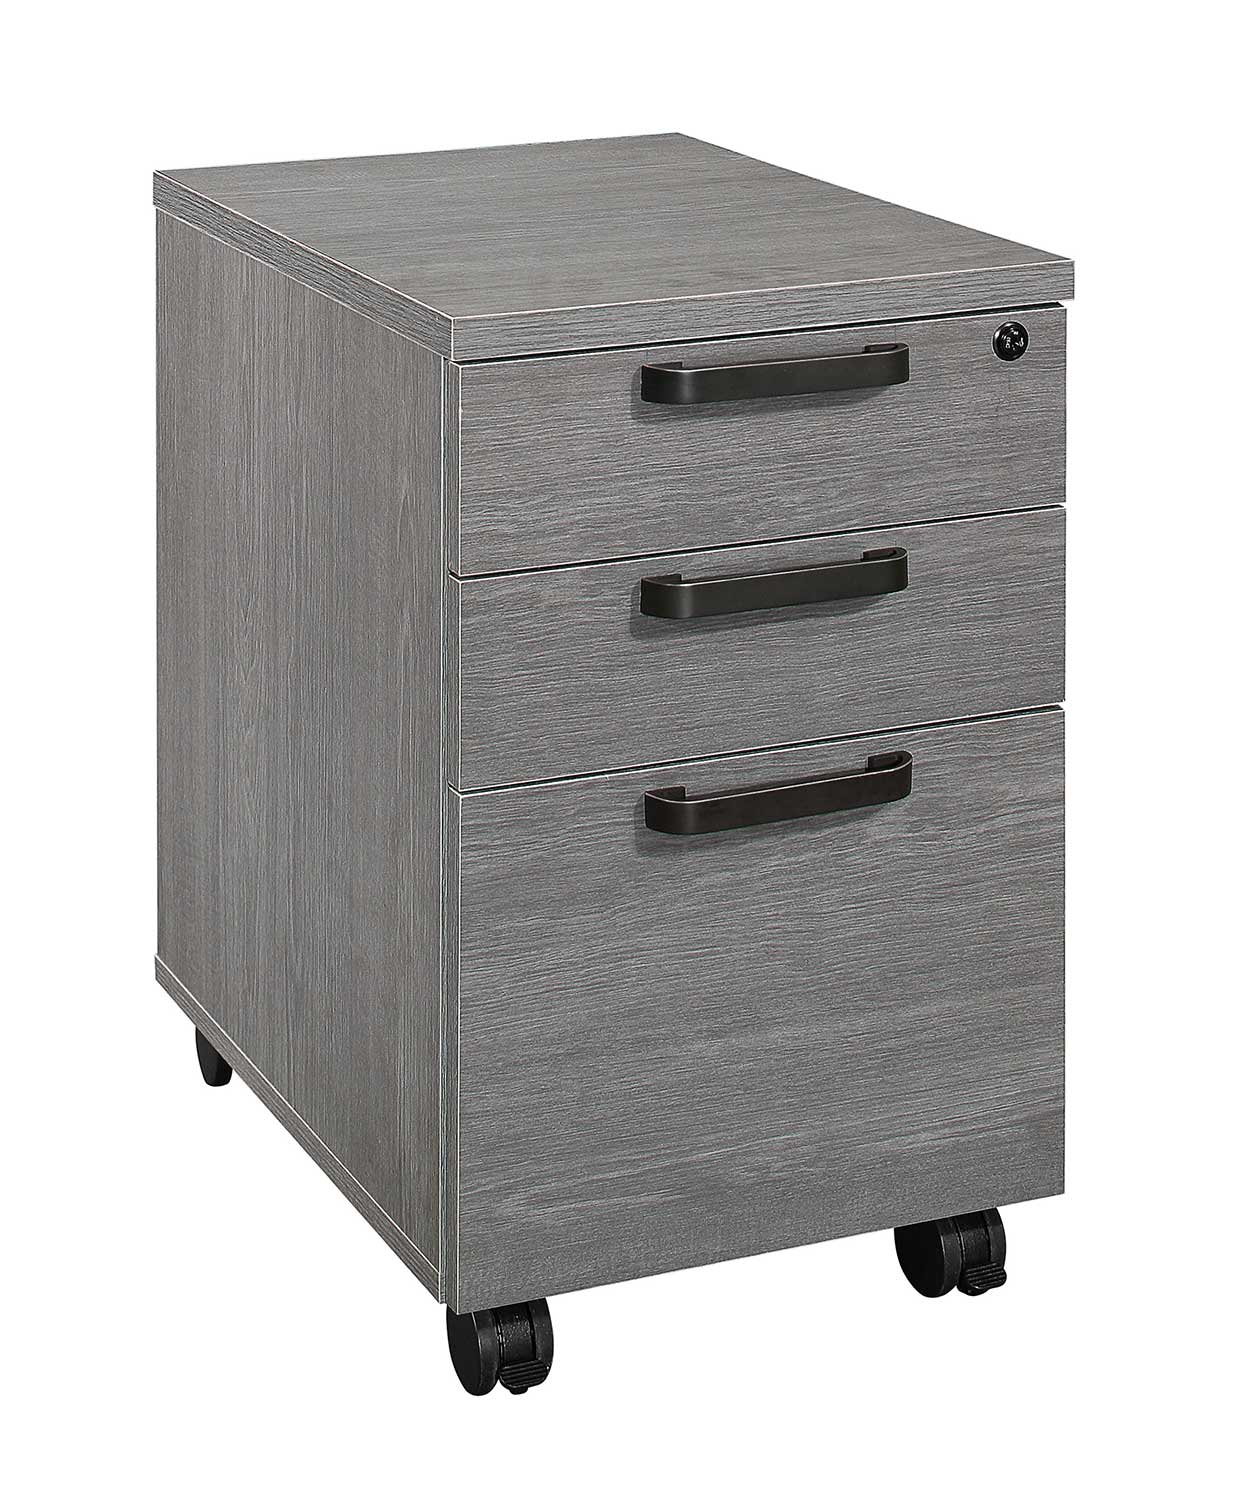 Homelegance Dogue File Cabinet - Gunmetal - Gray